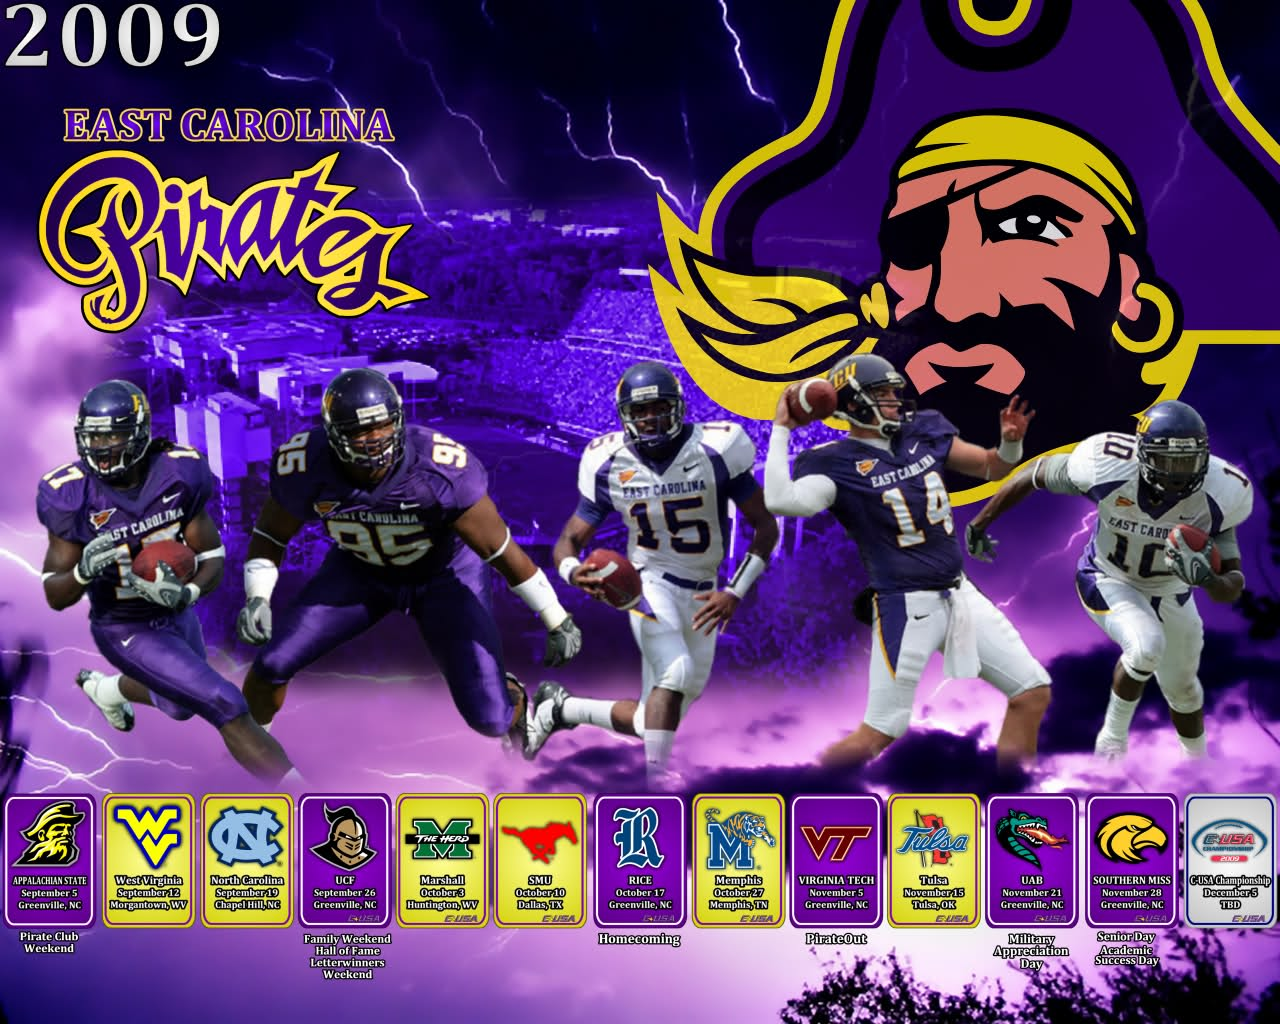 Ecu Pirates Wallpaper 1280x1024